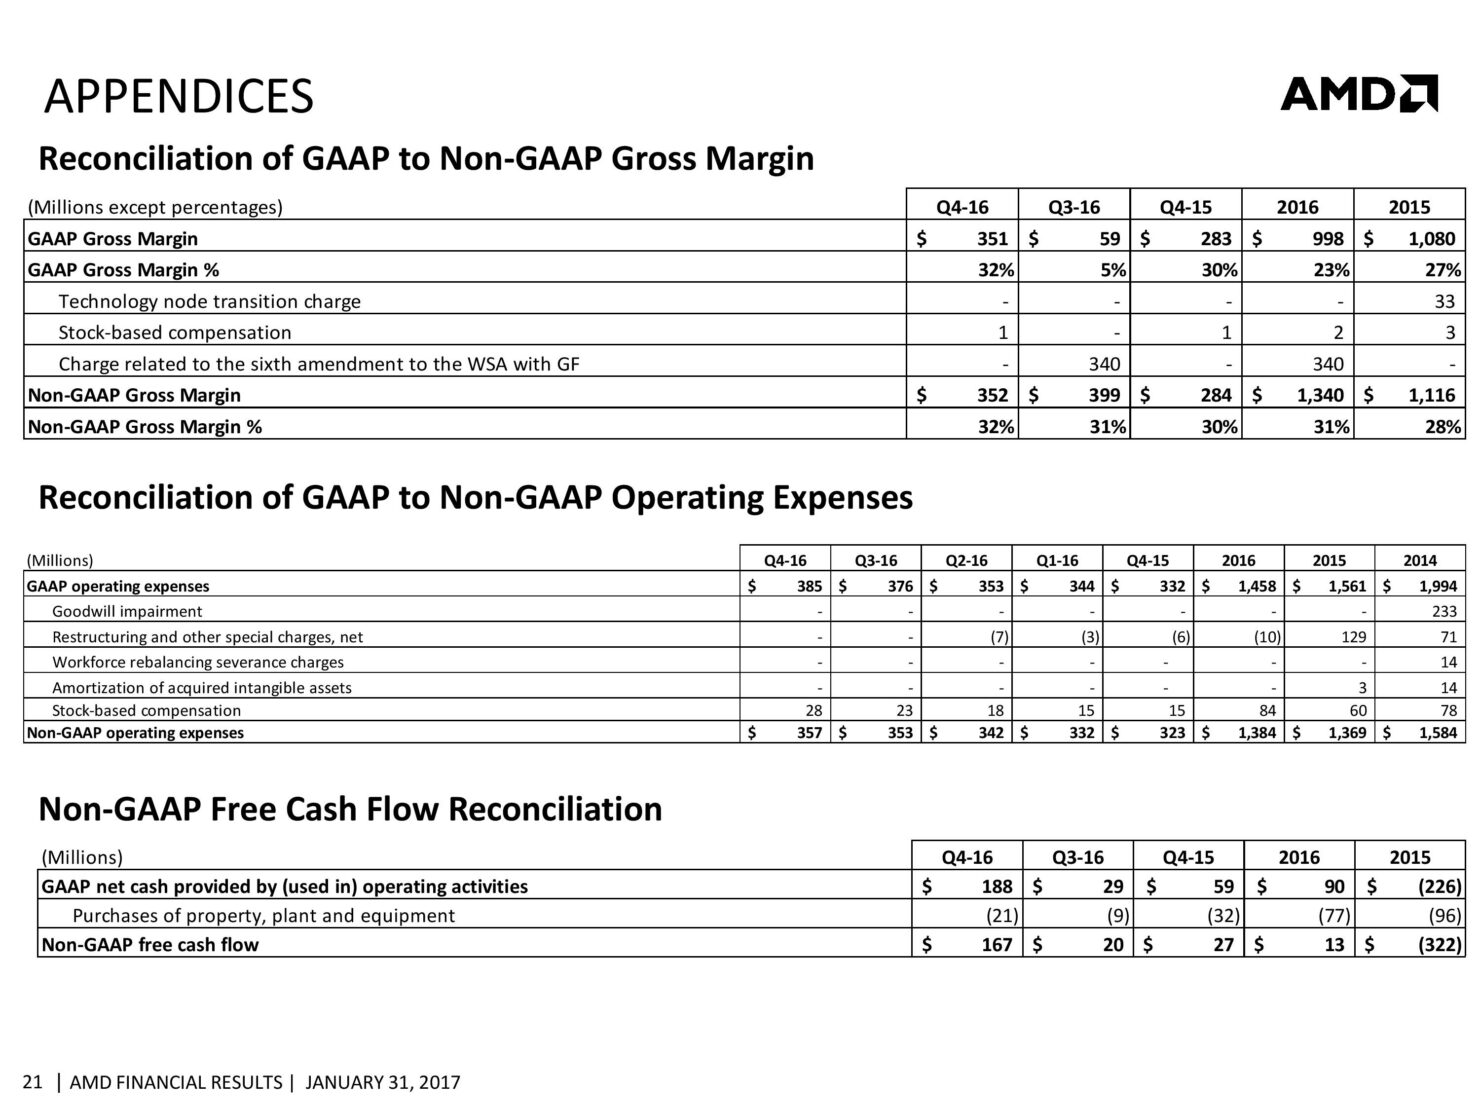 amd-cfo-commentary-slides-q4-16-page-021